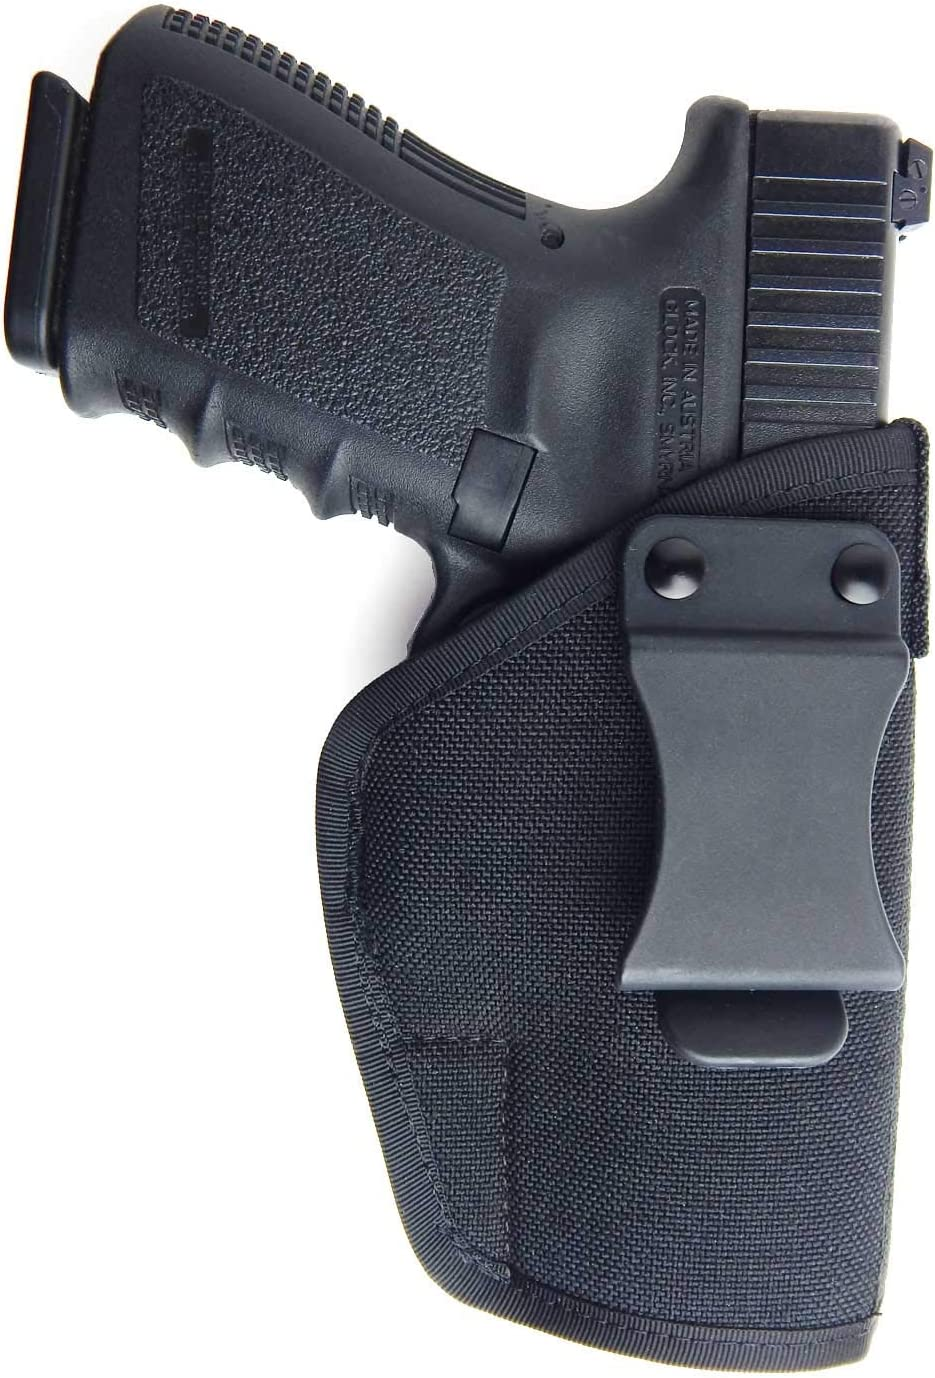 Low Profile Slim Concealed Carry Holster Fits Glock 42 ClipDraw Gun Clip